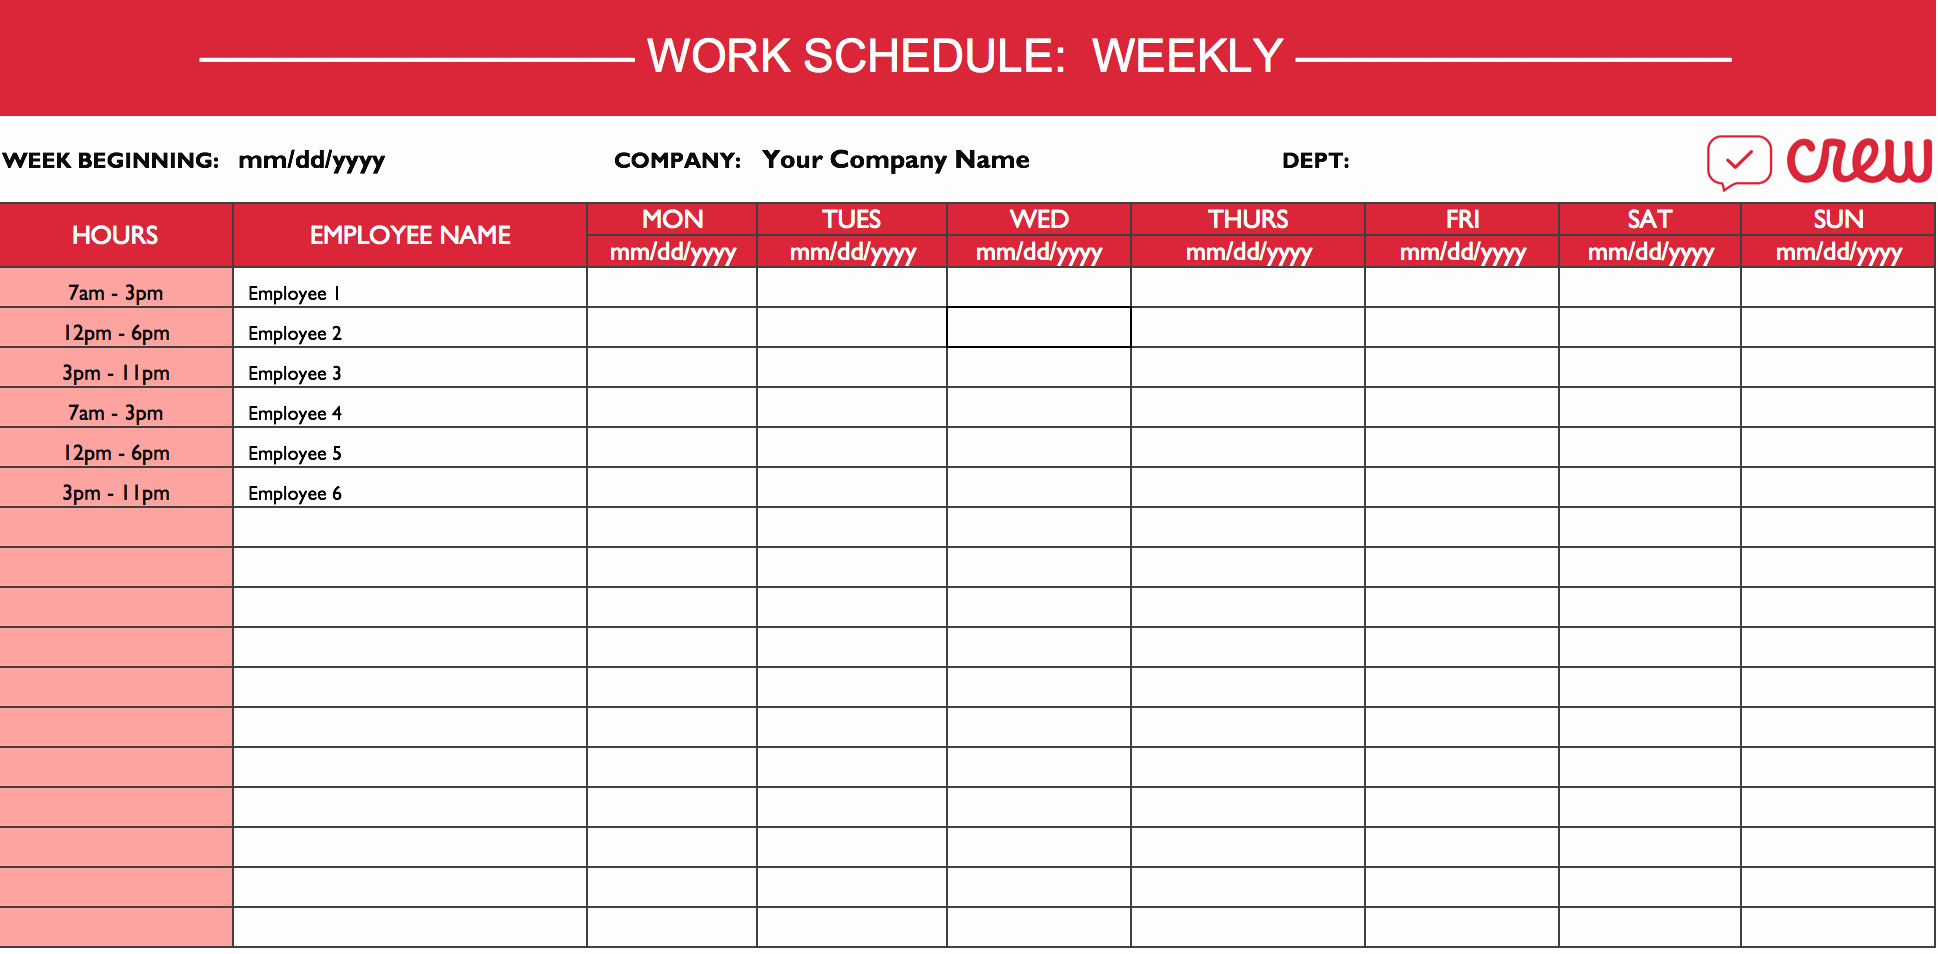 Weekly Staff Schedule Template Beautiful Weekly Work Schedule Template I Crew